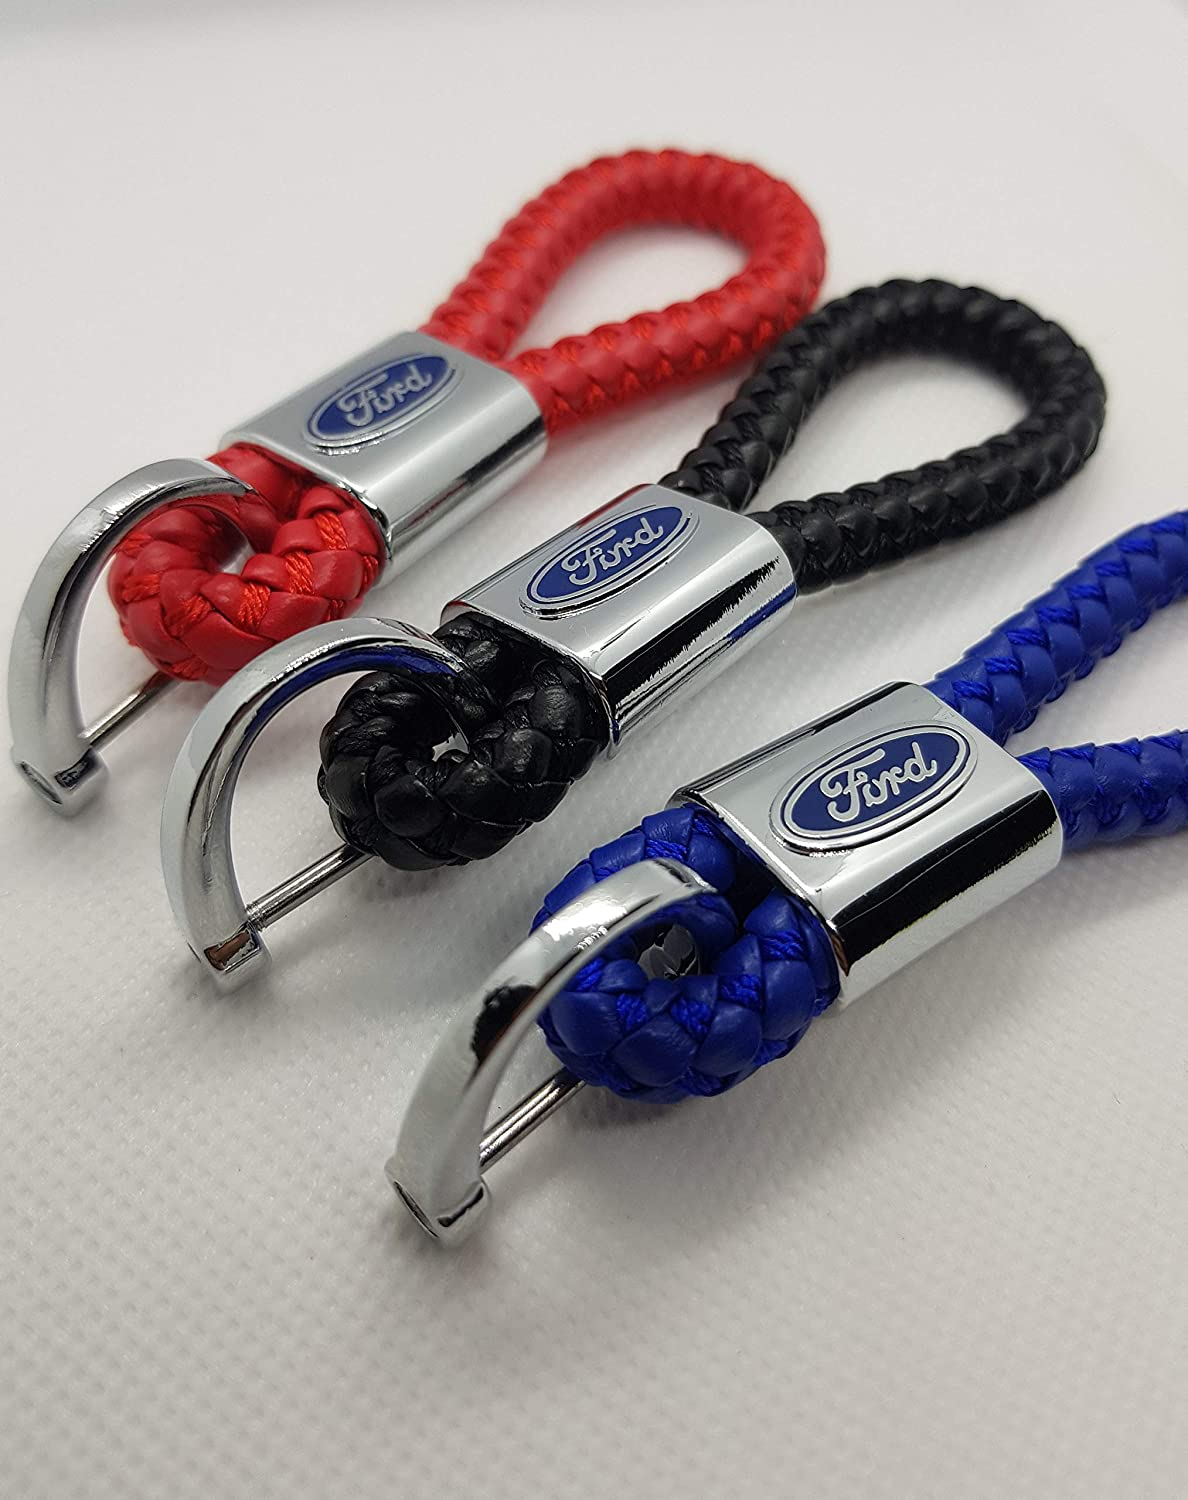 Key Chain Accessories With Leaping Logo Emblem KeyChain Accessories Keyring Gift for Man and Women ELPCraft Leather Car Logo Keychain Compatible For Jaguar Blue